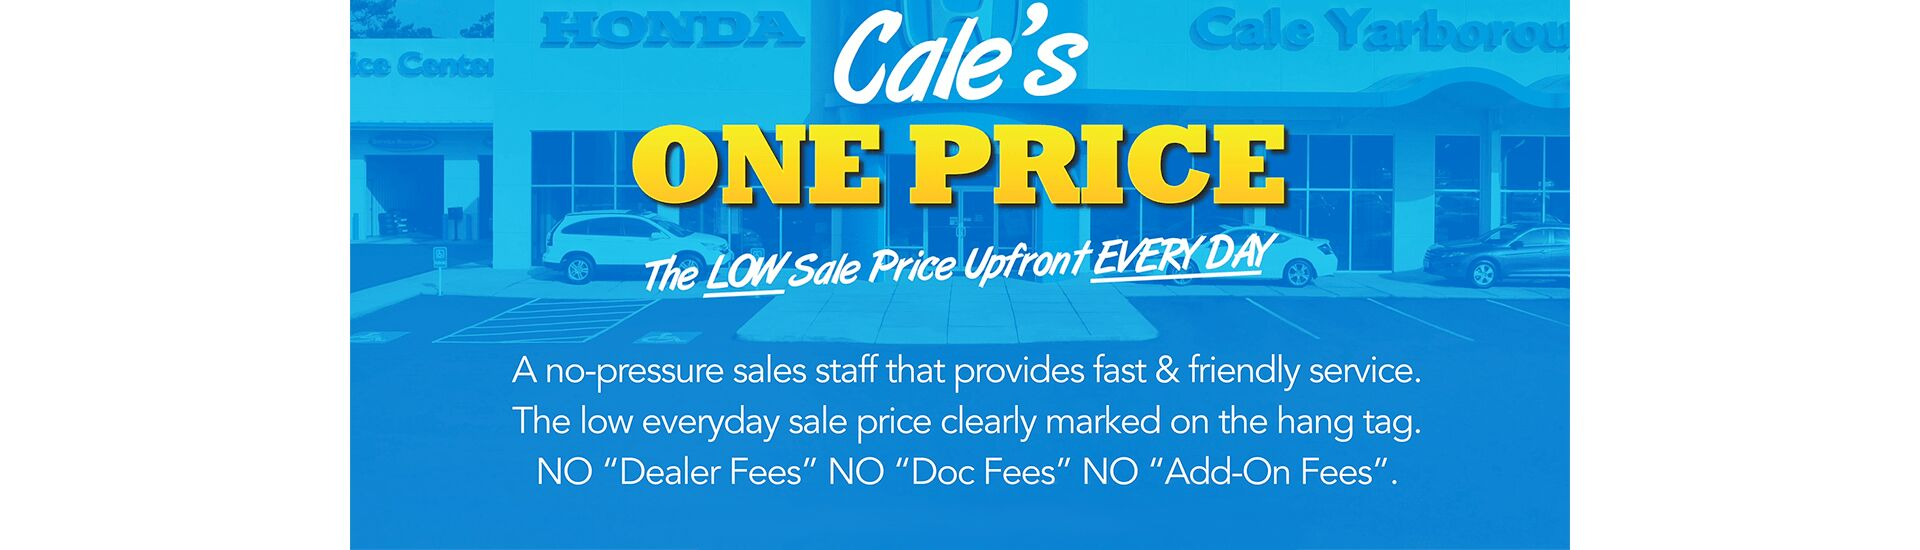 Cale's One Price